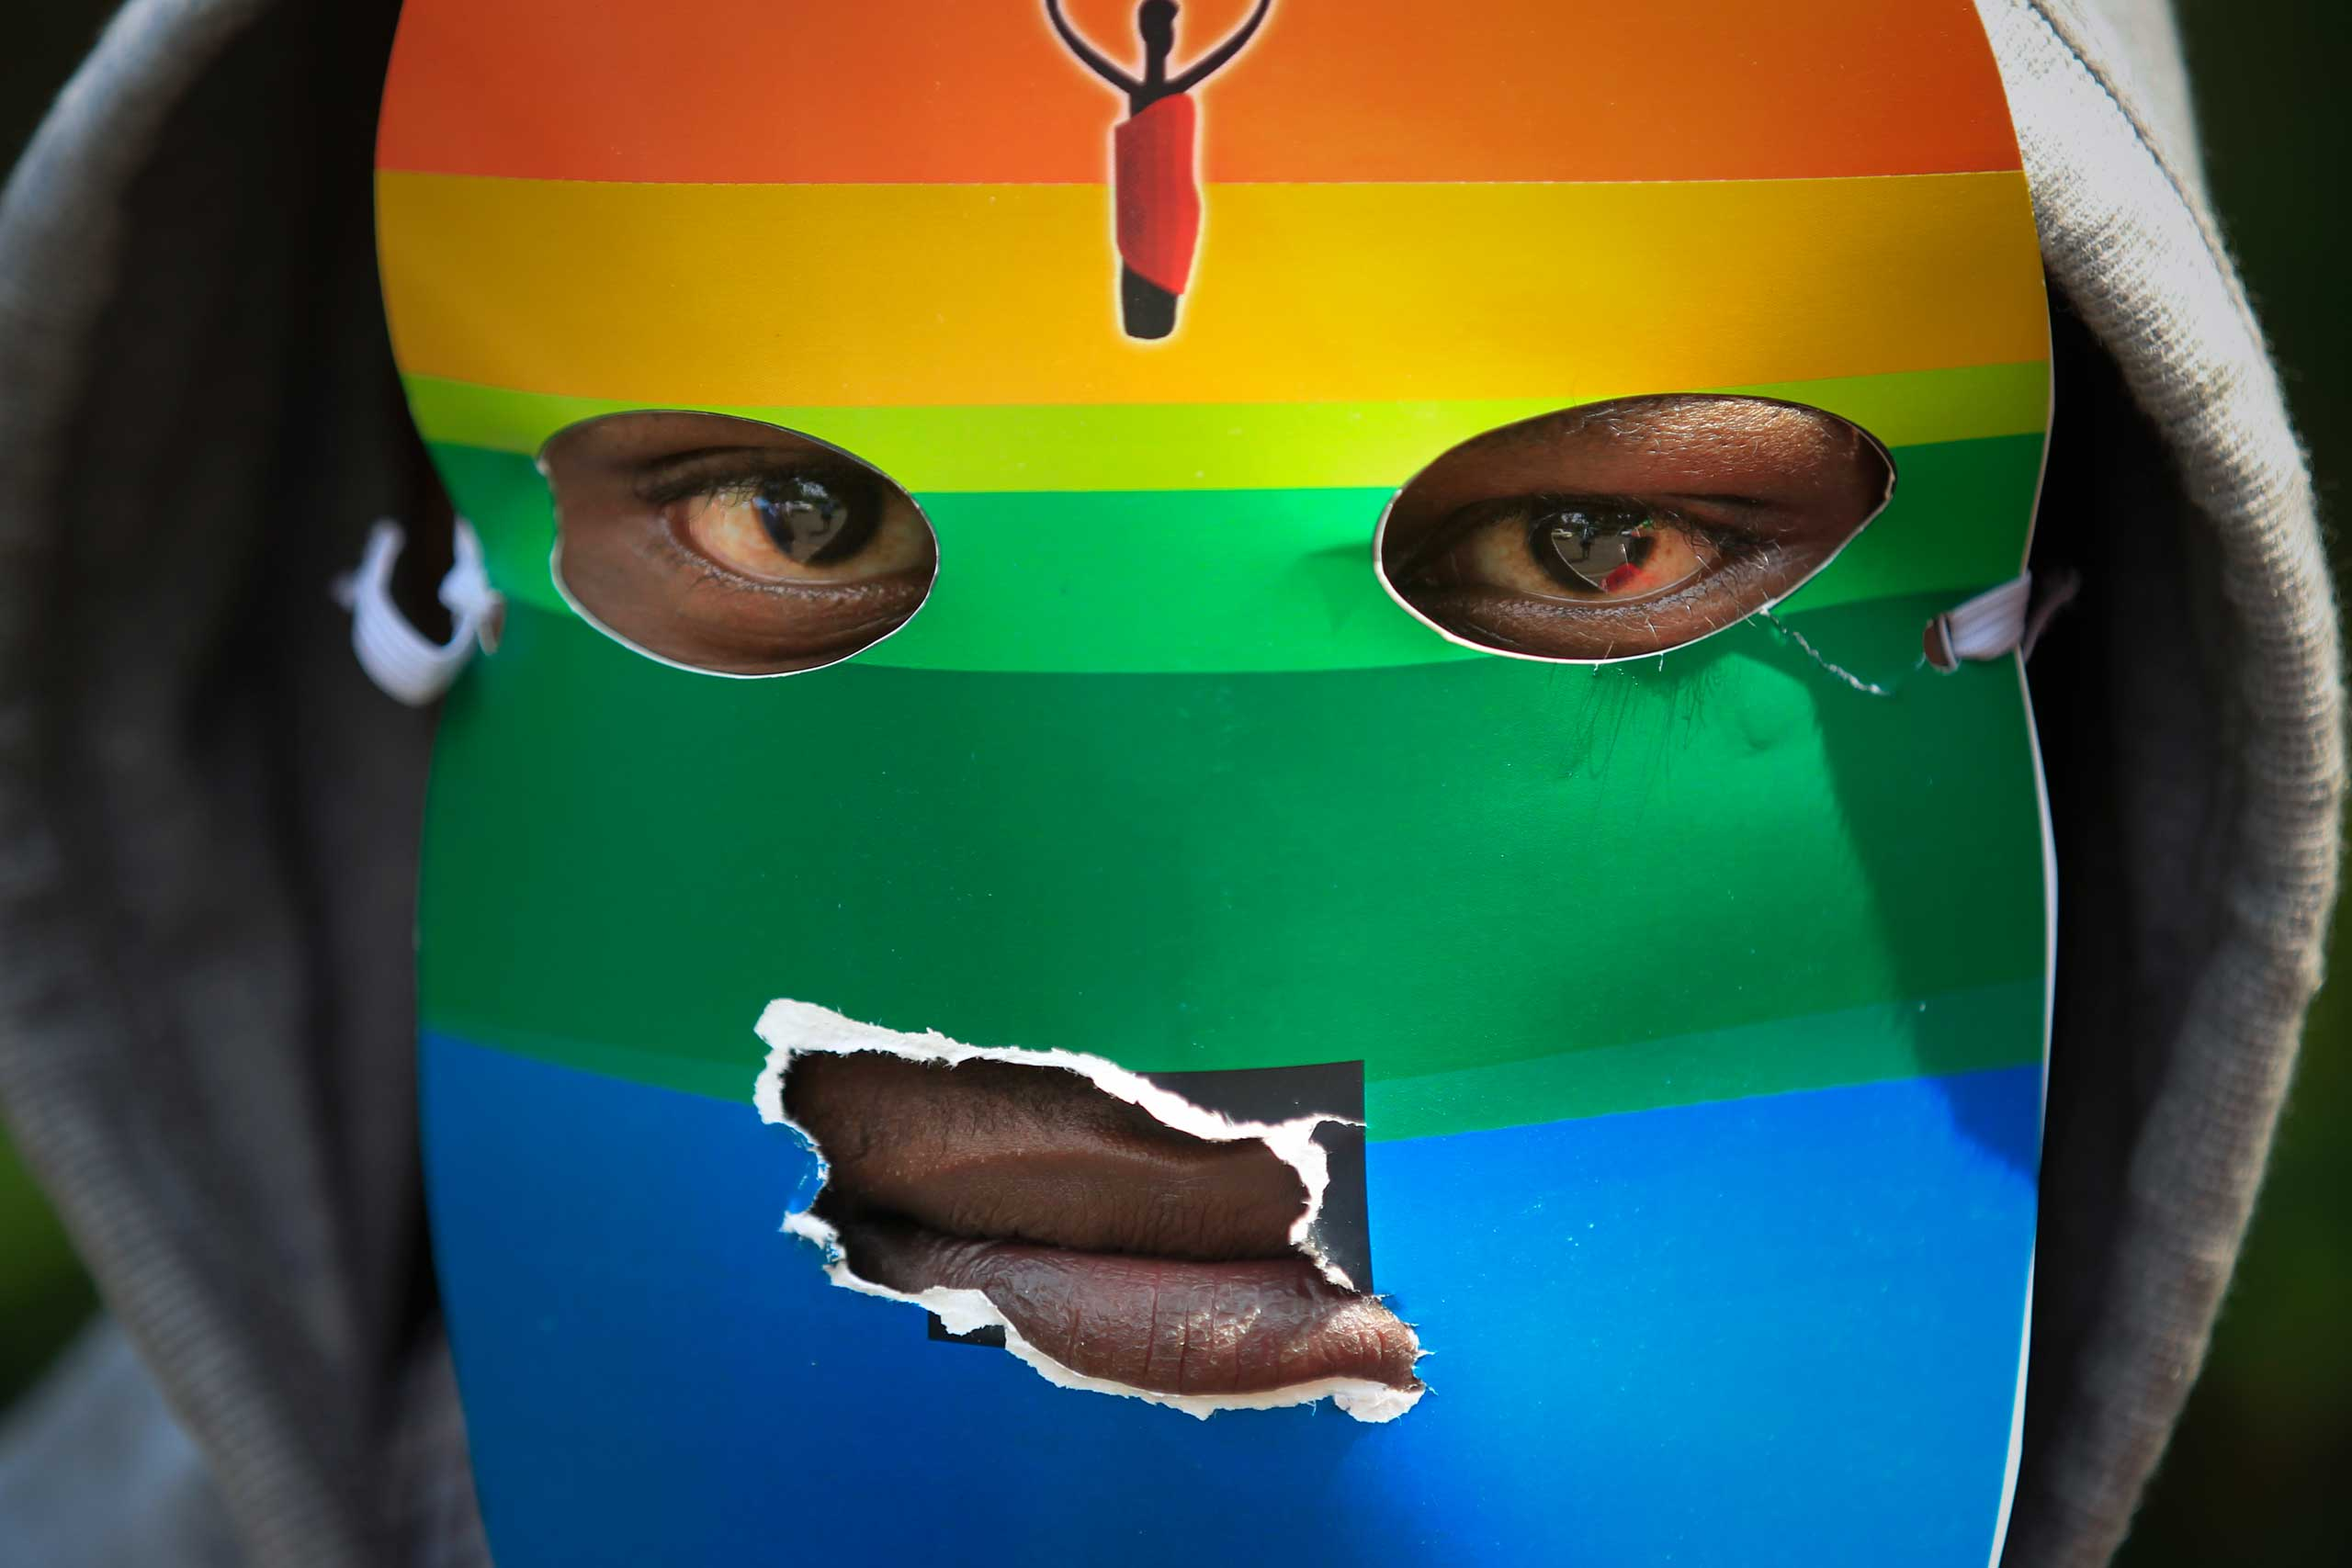 Kenya: Support for LGBT rightsA masked Kenyan supporter of the LGBT community joins others during a protest against Uganda's anti-gay bill in front of the Ugandan High Commission in Nairobi, Kenya, Feb. 10, 2014.